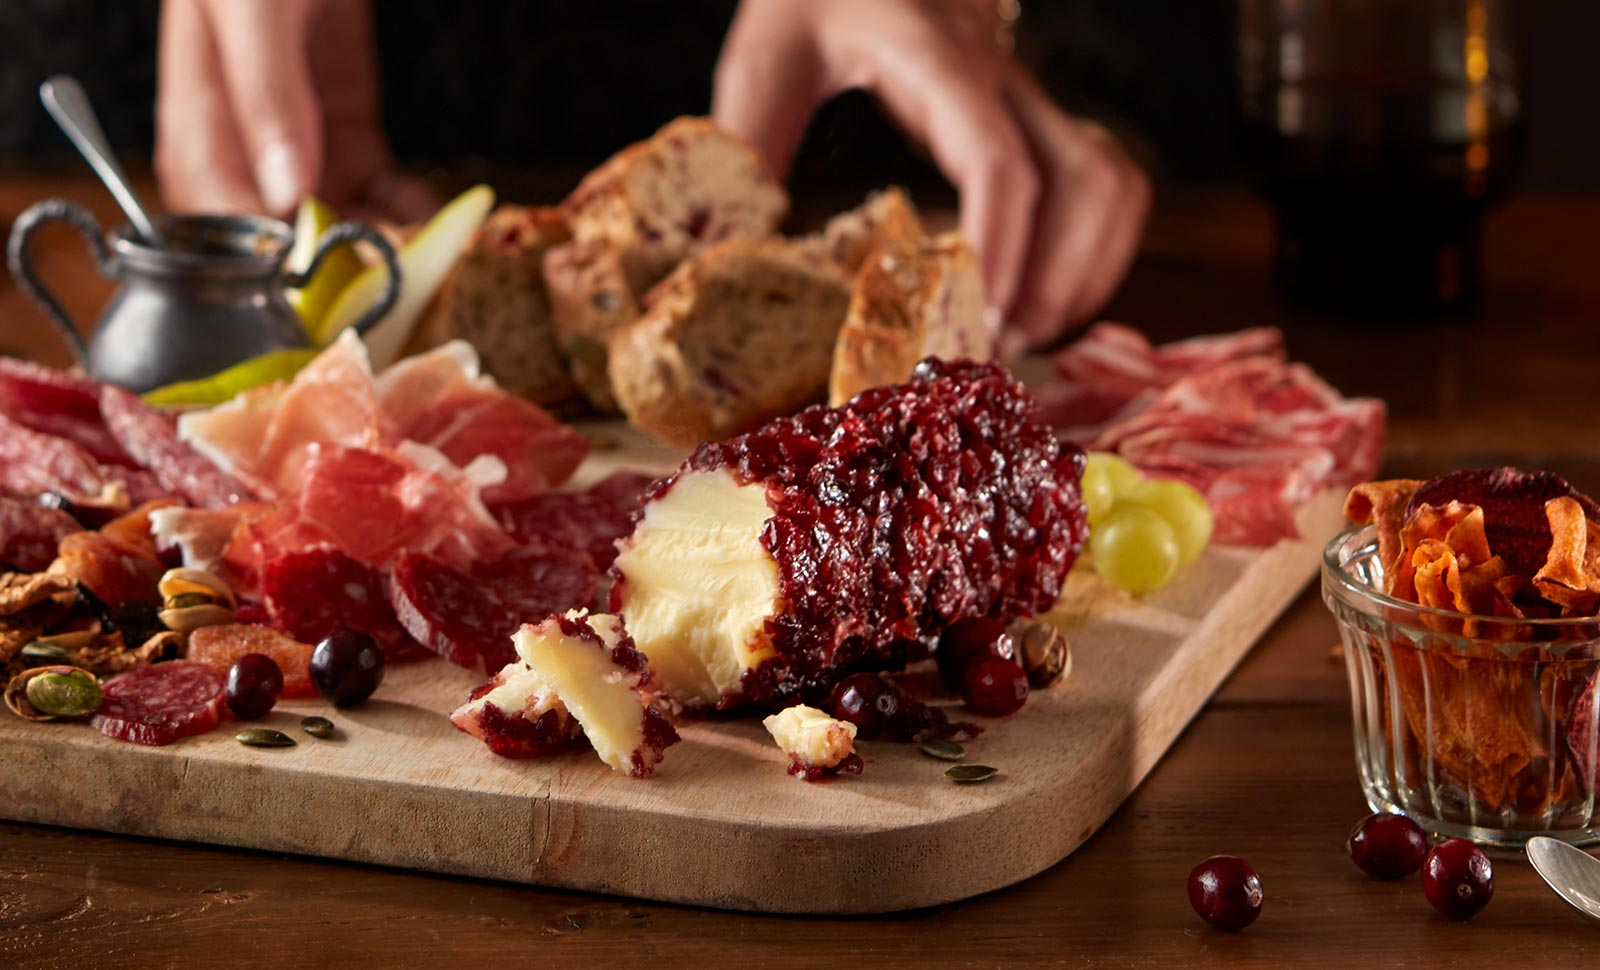 A pair of hands preparing a wooden board with cheddar cheese with cranberry log, assorted sliced meats, fruits and breads.